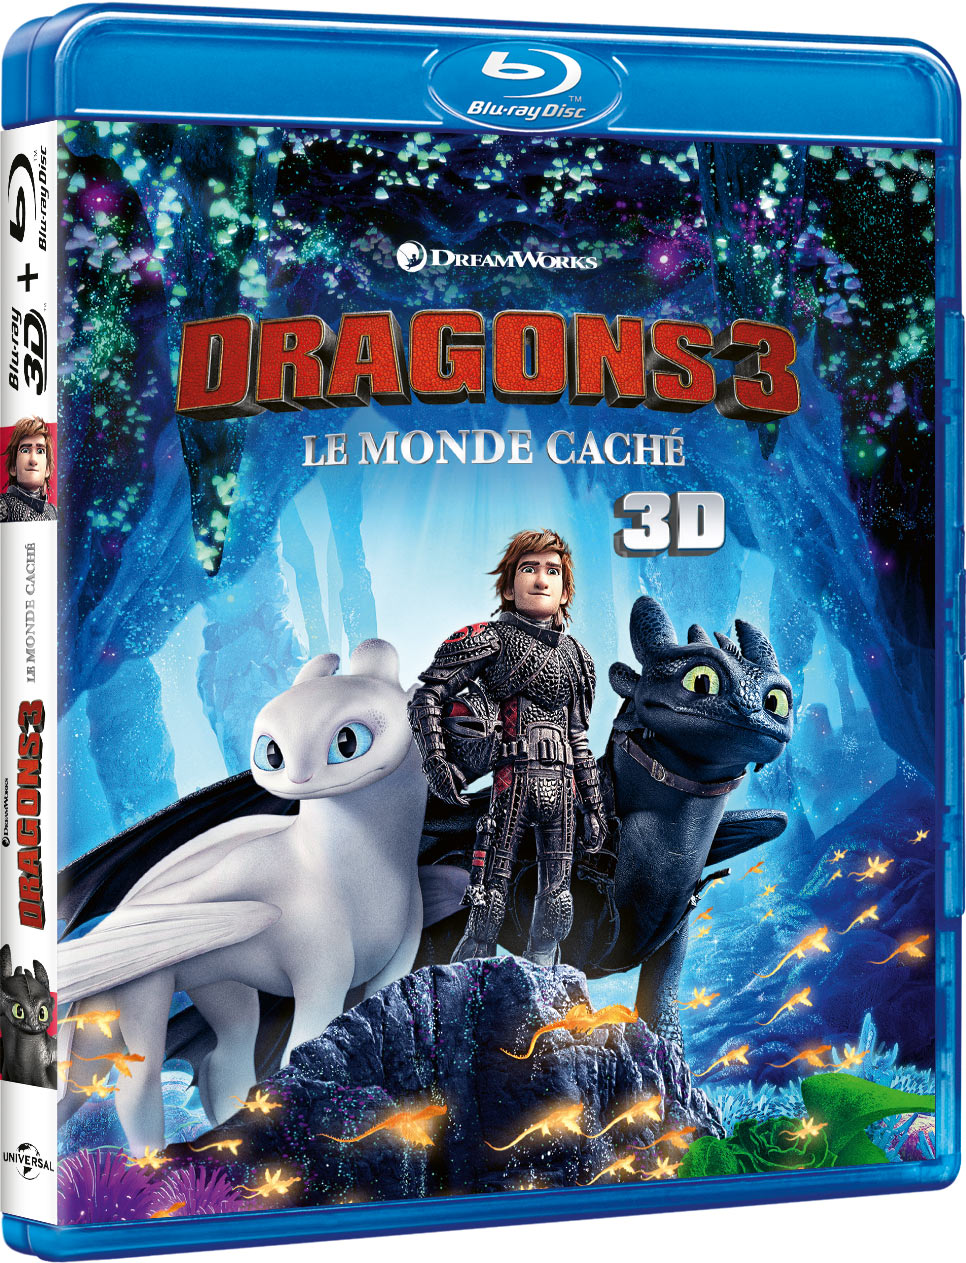 Dragons 3 : Le Monde caché - Blu-ray 3D + Blu-ray 2D + Digital